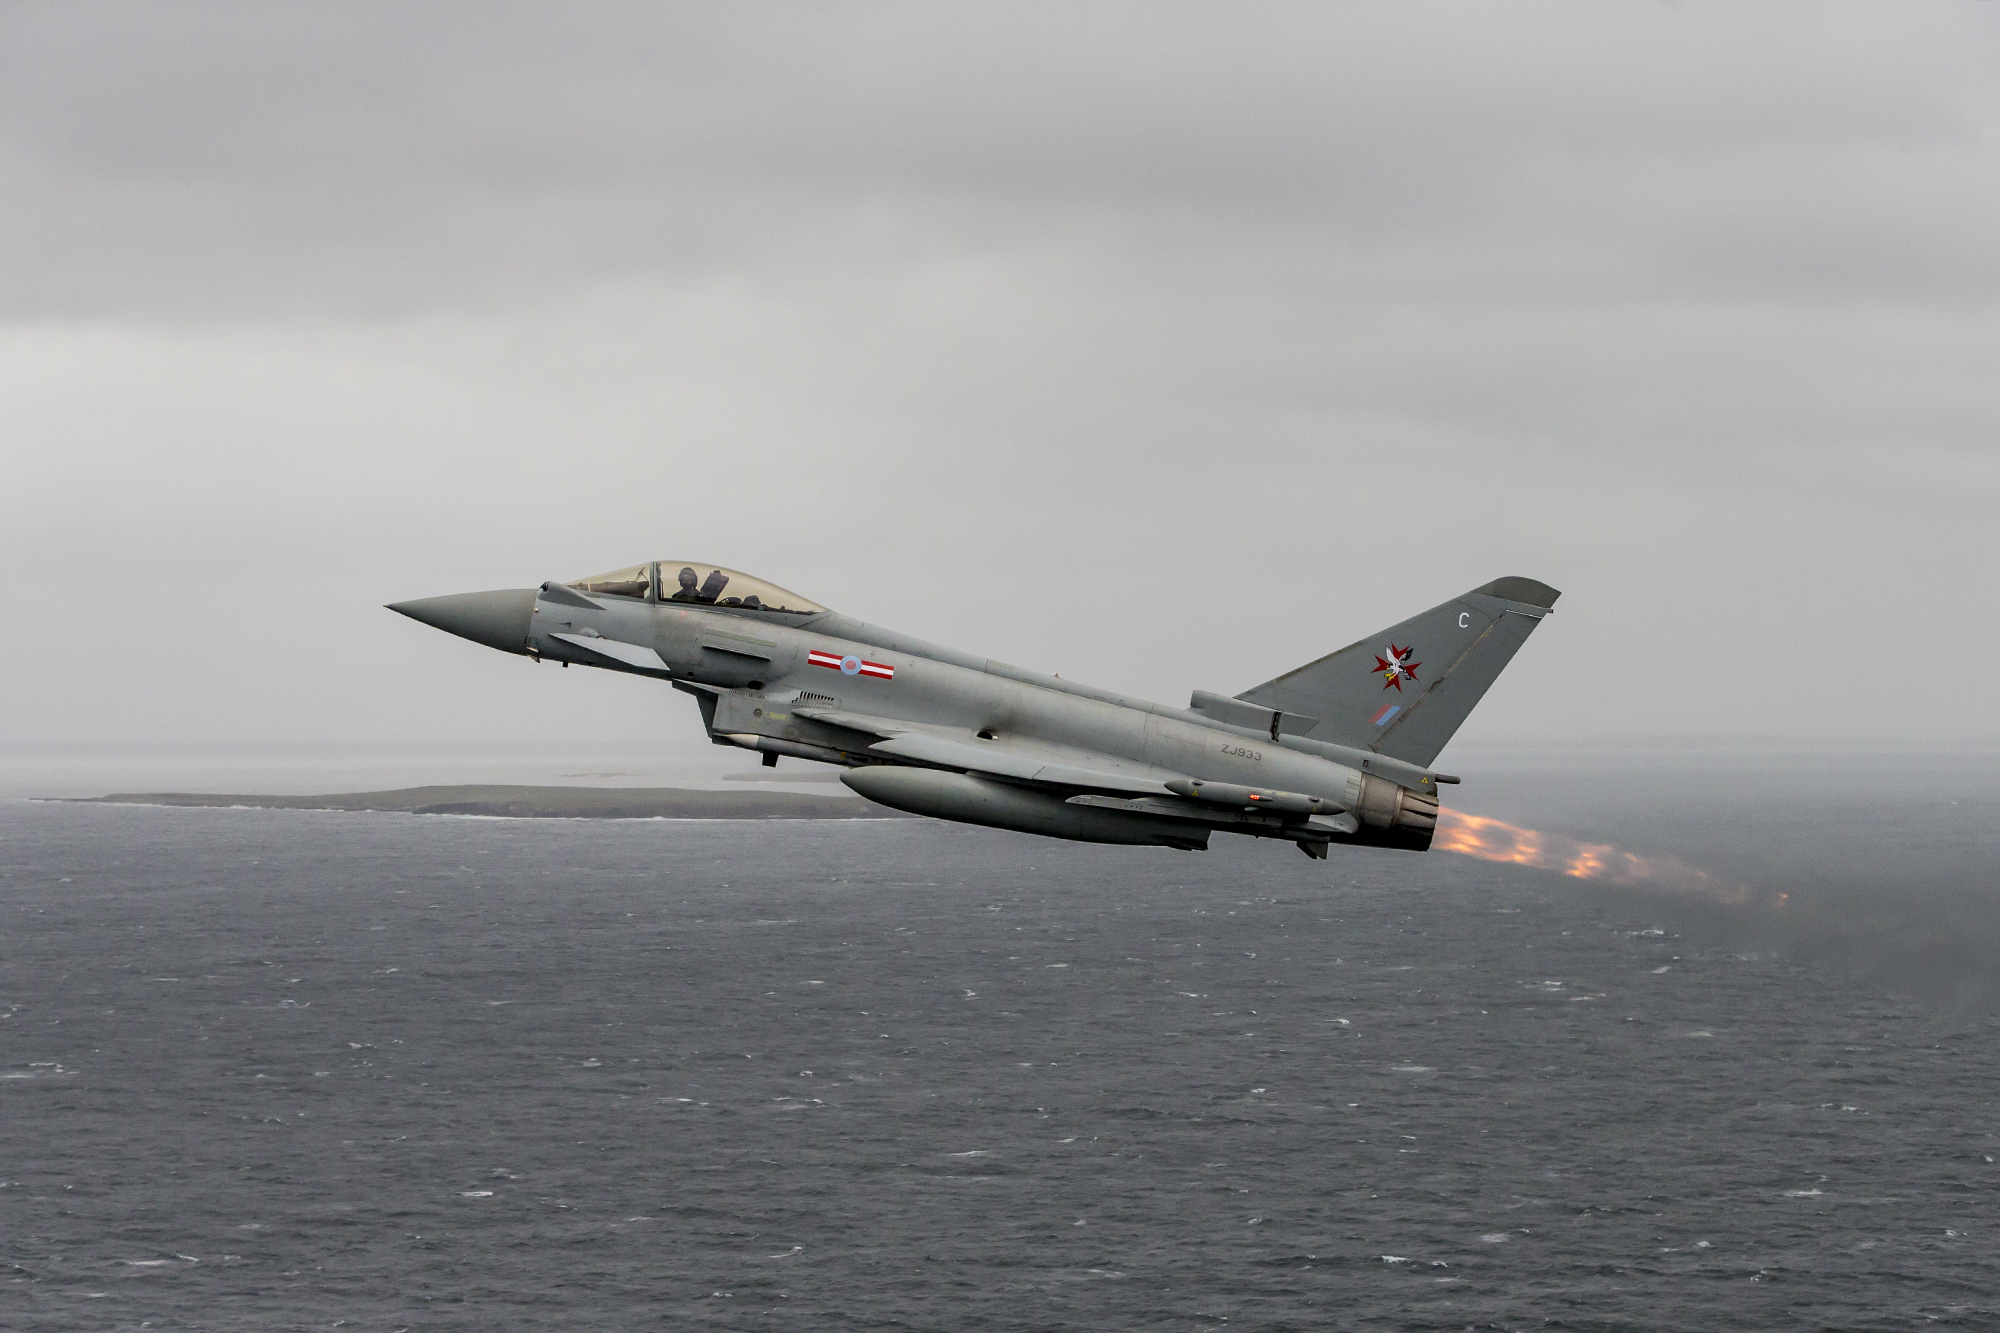 A Royal Air Force Typhoon pictured during a routine sortie in the Falkland Islands. Crown Copyright.